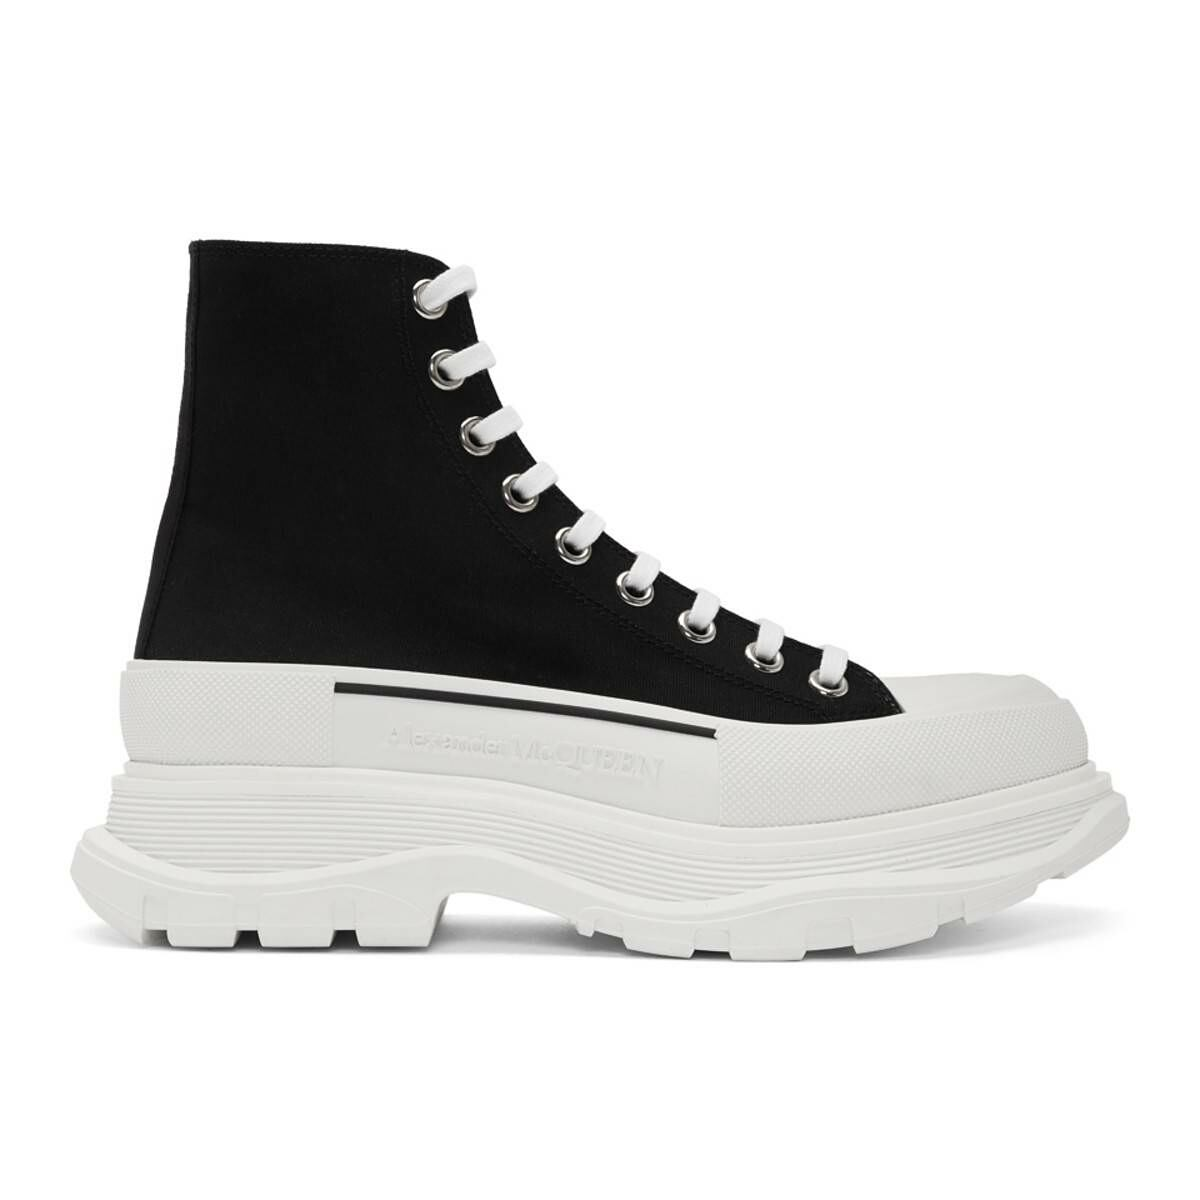 Alexander McQueen Black and White Canvas Lace-Up Boots Ssense USA MEN Men SHOES Mens BOOTS